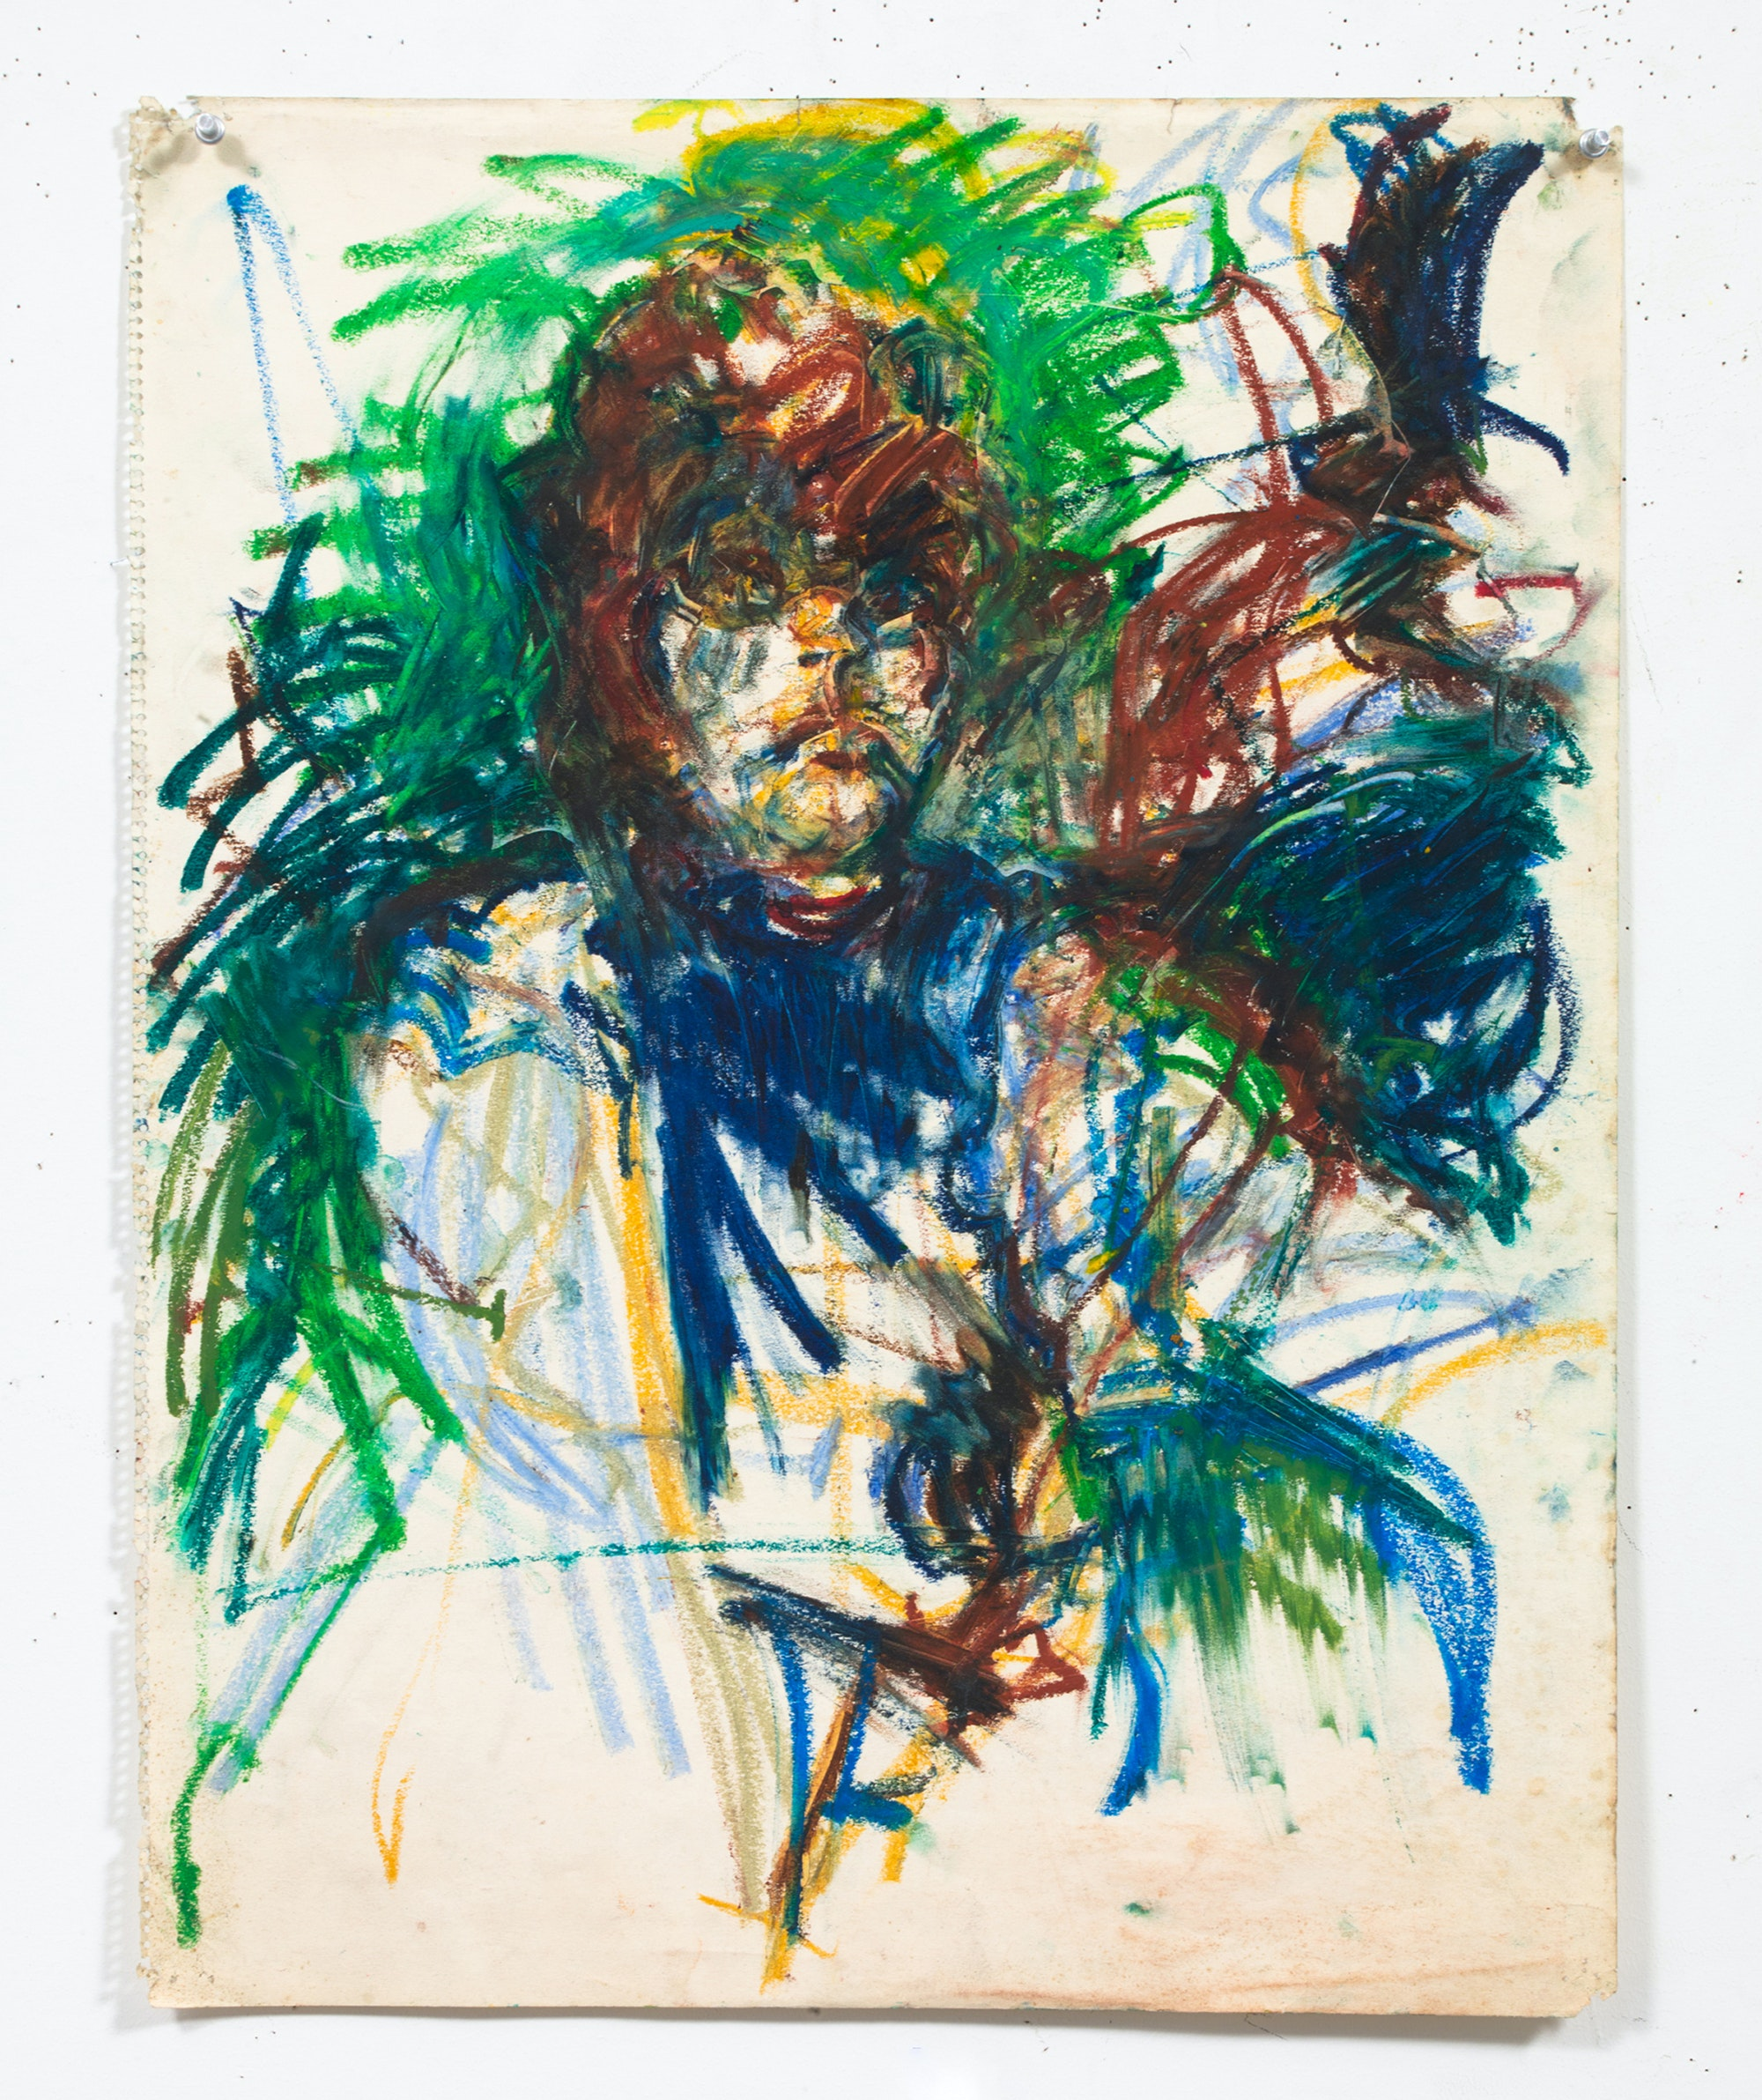 Joyce Pensato, <em>Untitled</em>, ca. 1980. Oil and pastel on paper, 24 3/4 x 19 1/4 inches. Courtesy The Joyce Pensato Estate and Petzel, New York.